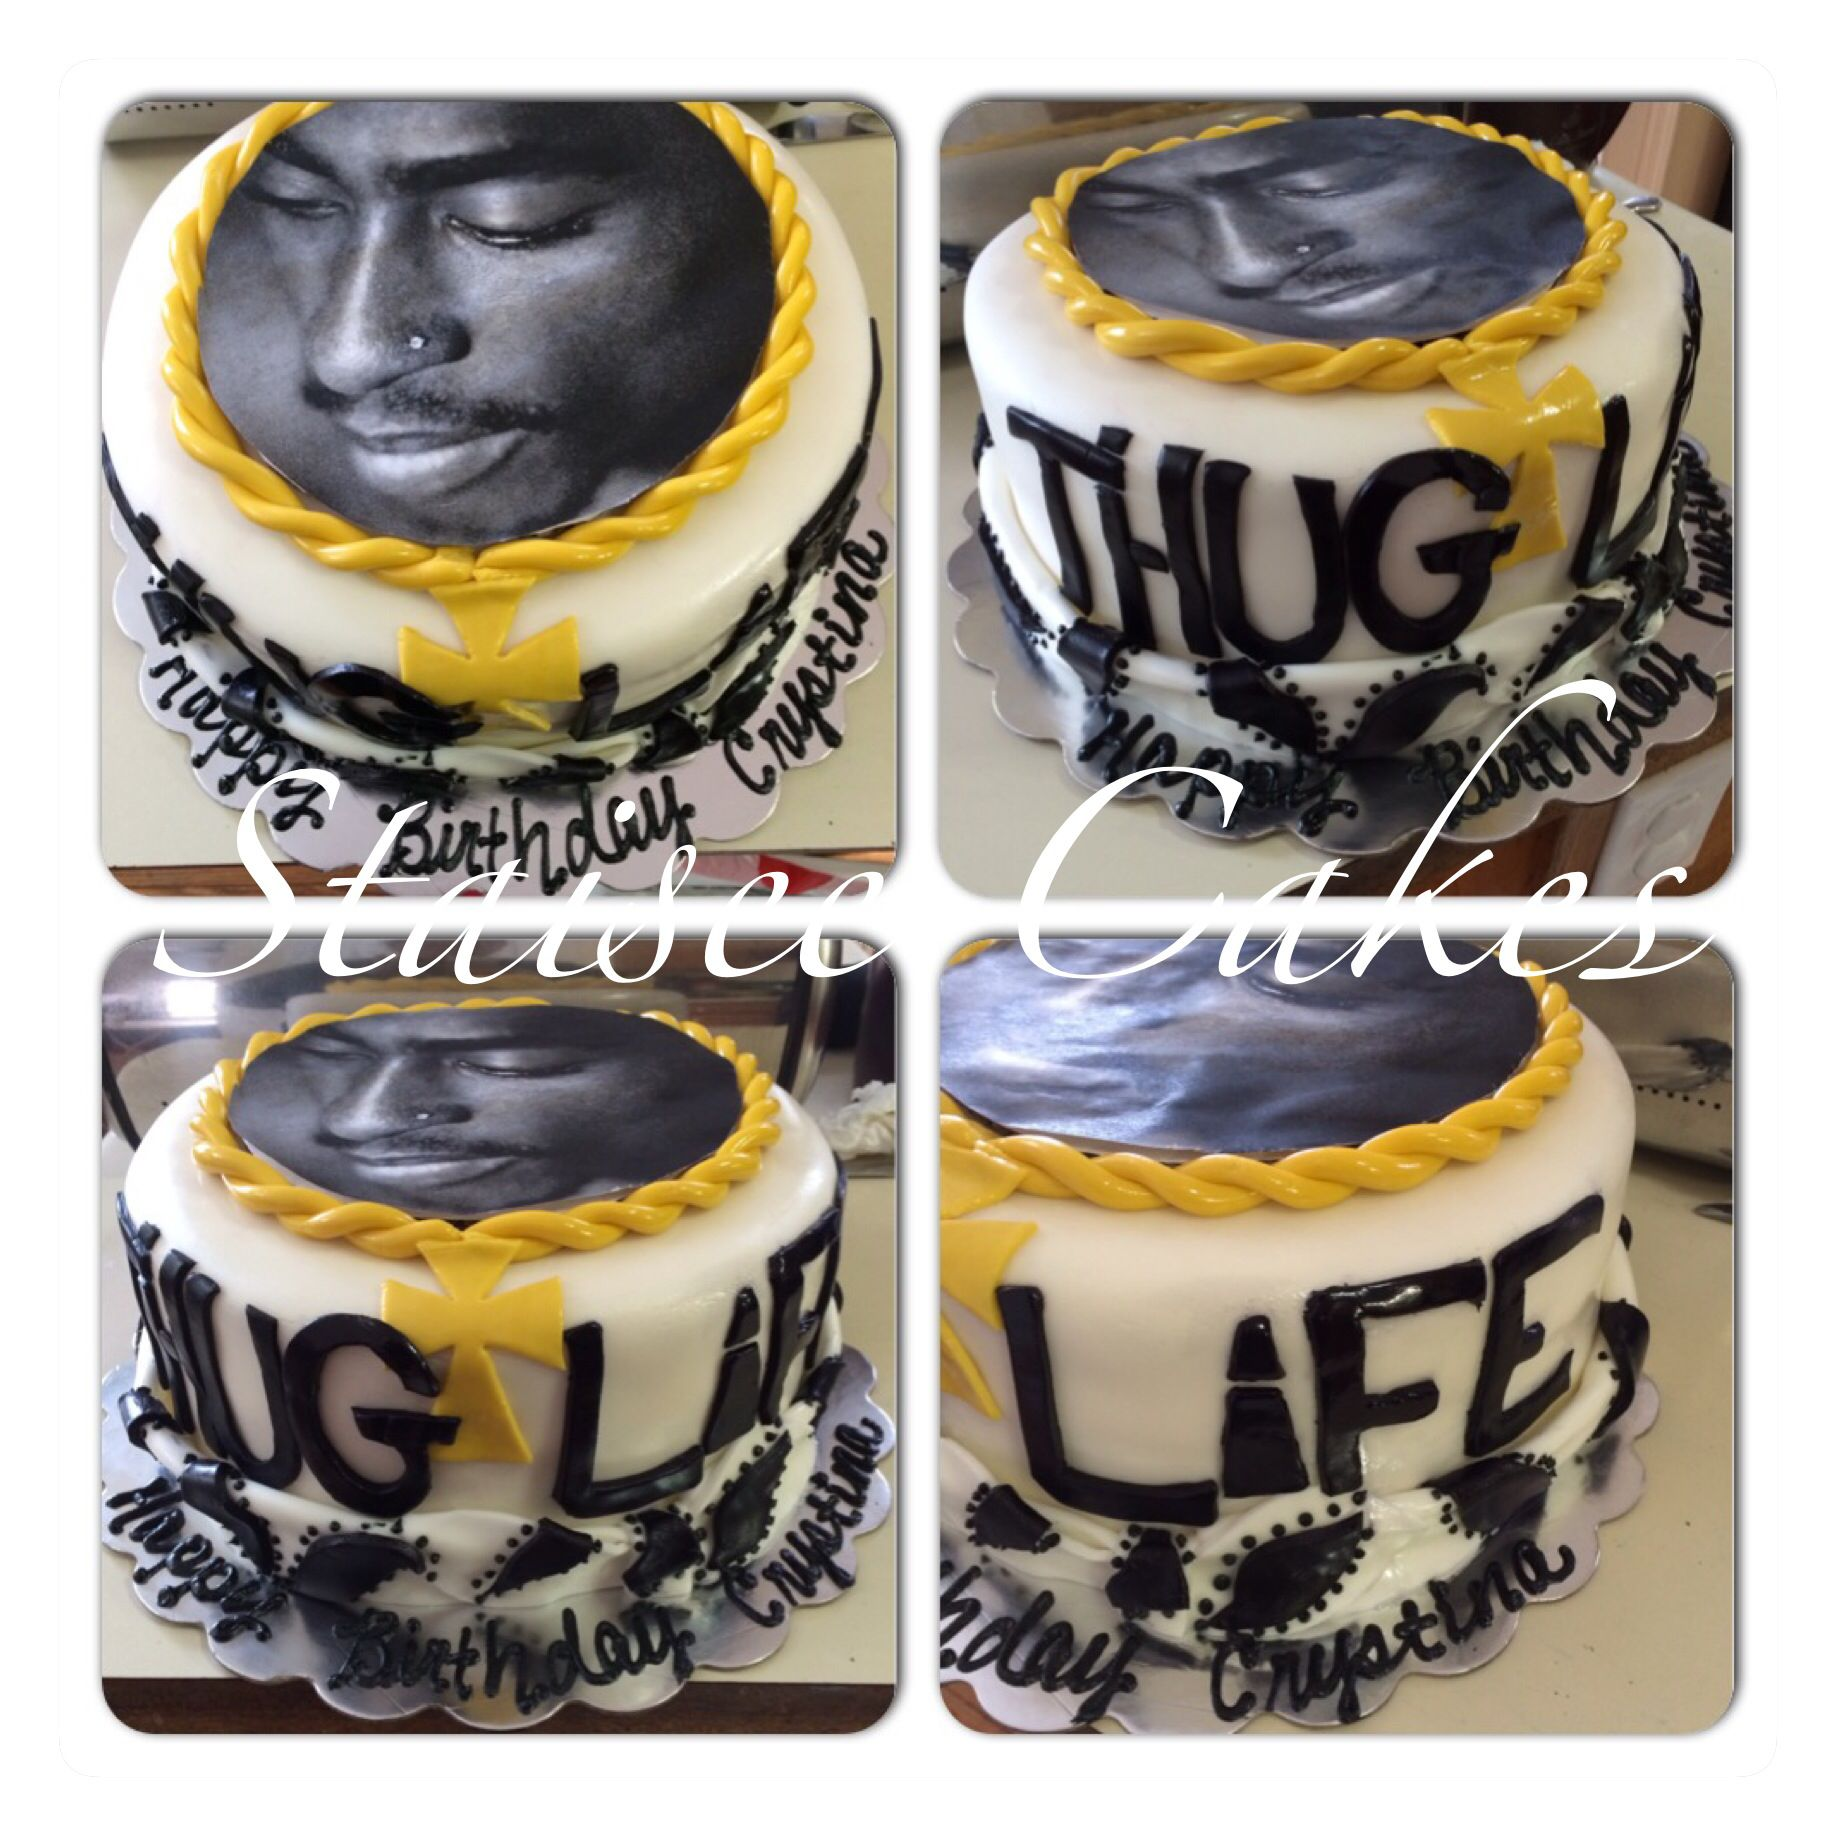 Tupac Cake Staisee Cakes In 2018 Pinterest Cake Birthday And